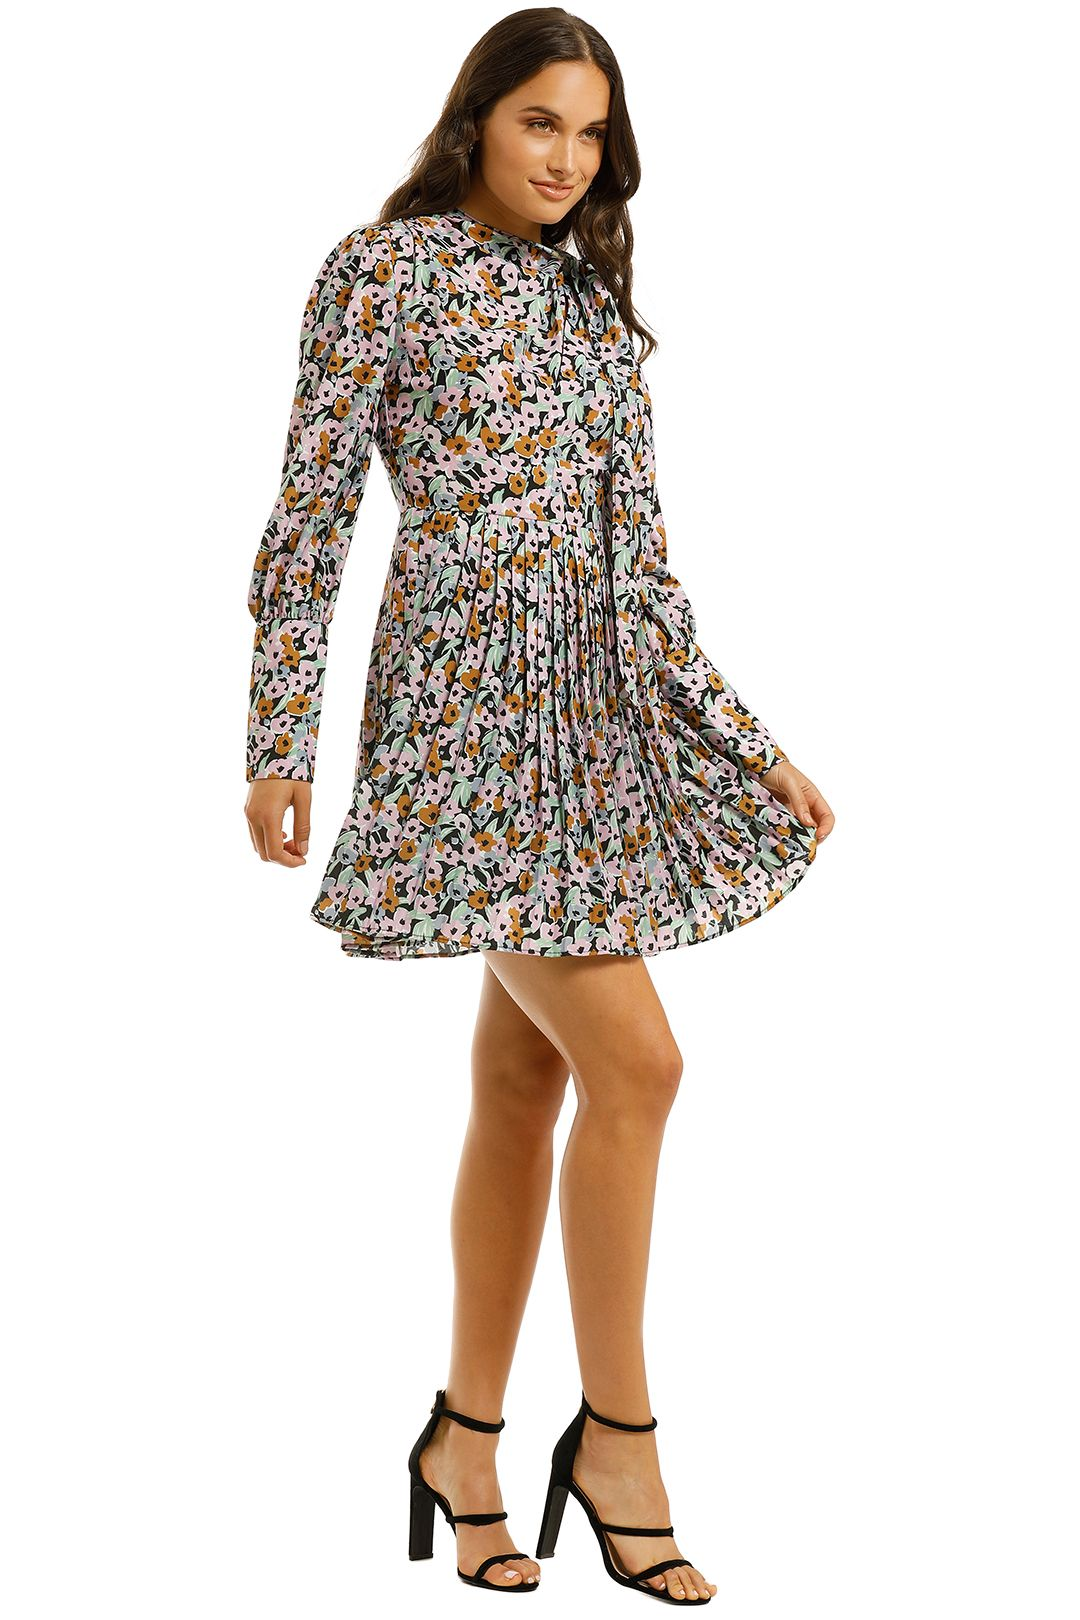 Grace-Willow-Alexis-Dress-Floral-Multi-Side